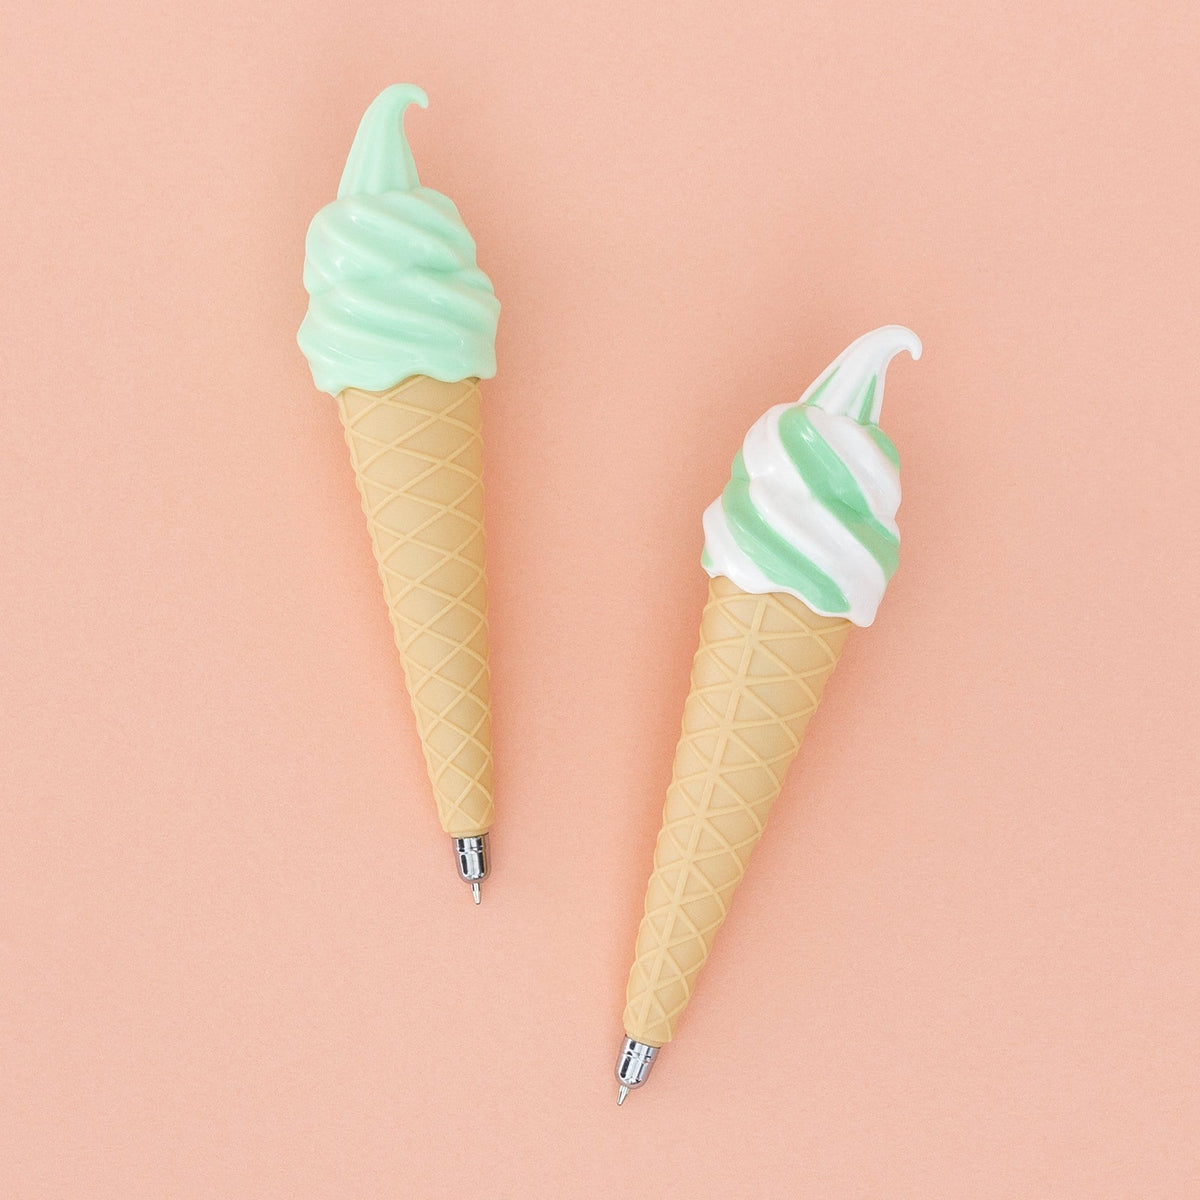 2 Pk Ice Cream Cone Pen - Mint